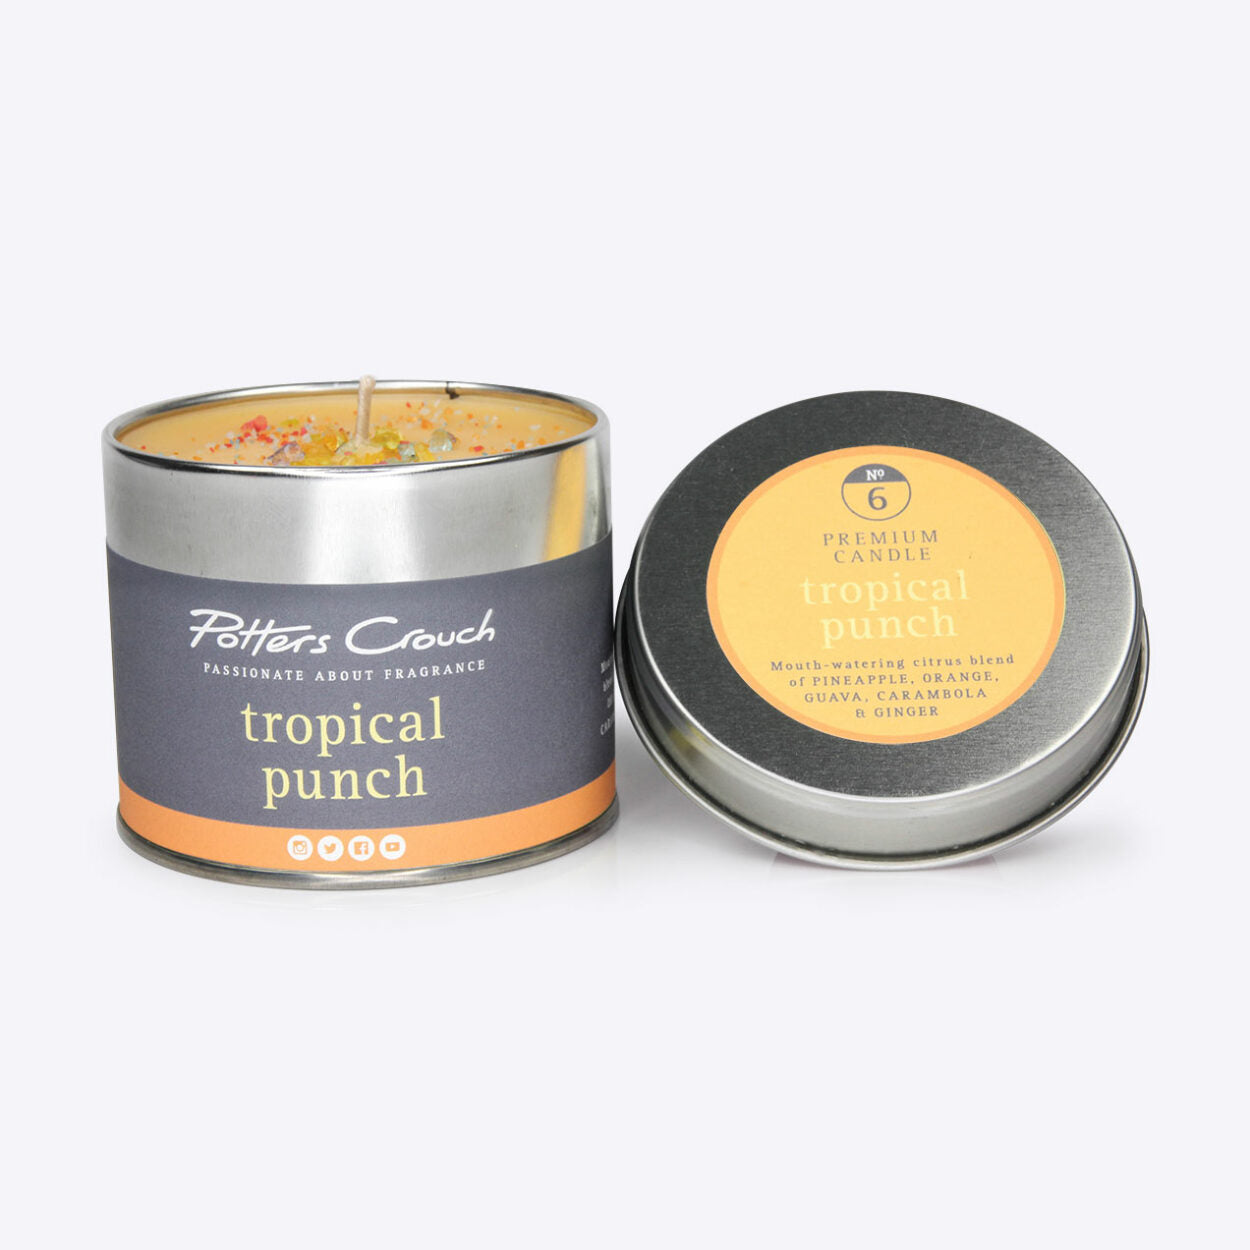 Tropical Punch Scented Candle in a Tin